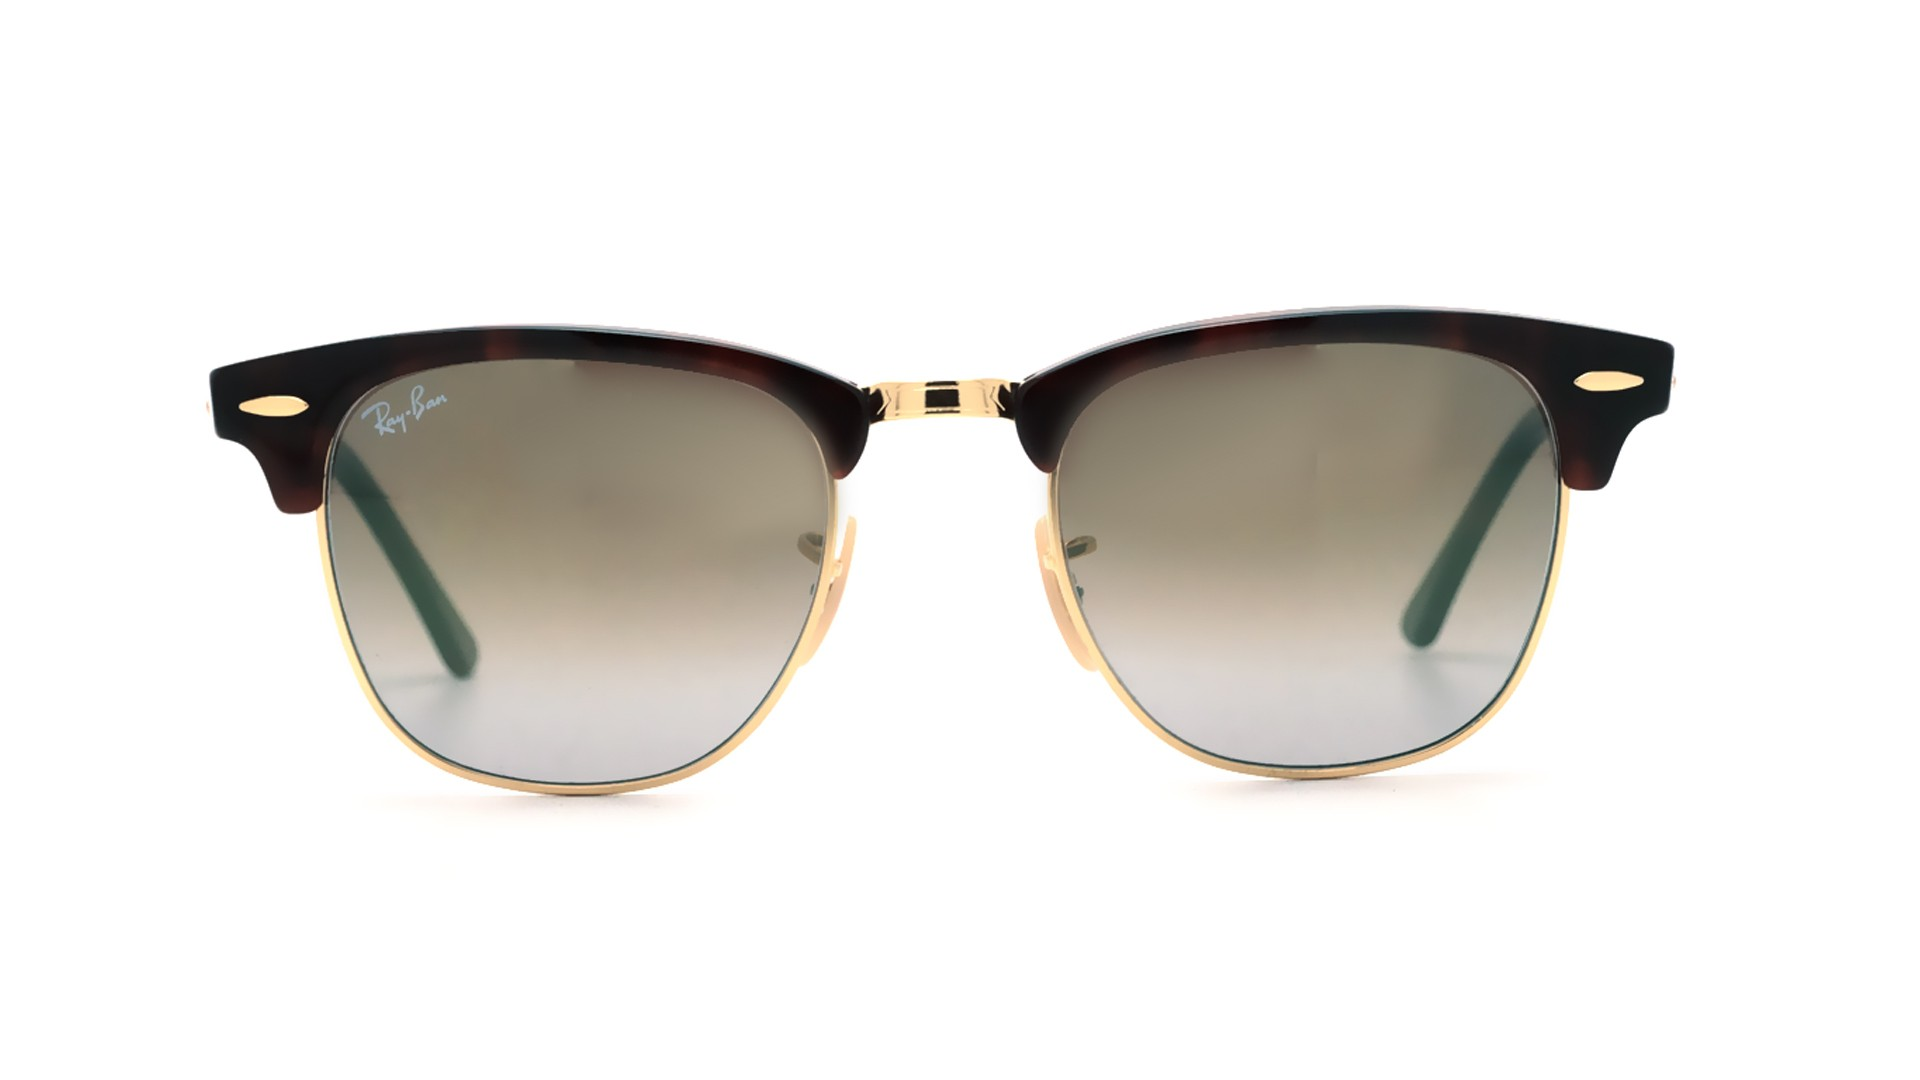 Sunglasses Ray-Ban Clubmaster Tortoise Flash lenses RB3016 990 9J 49-21  Small Degraded Flash 9569d948a5